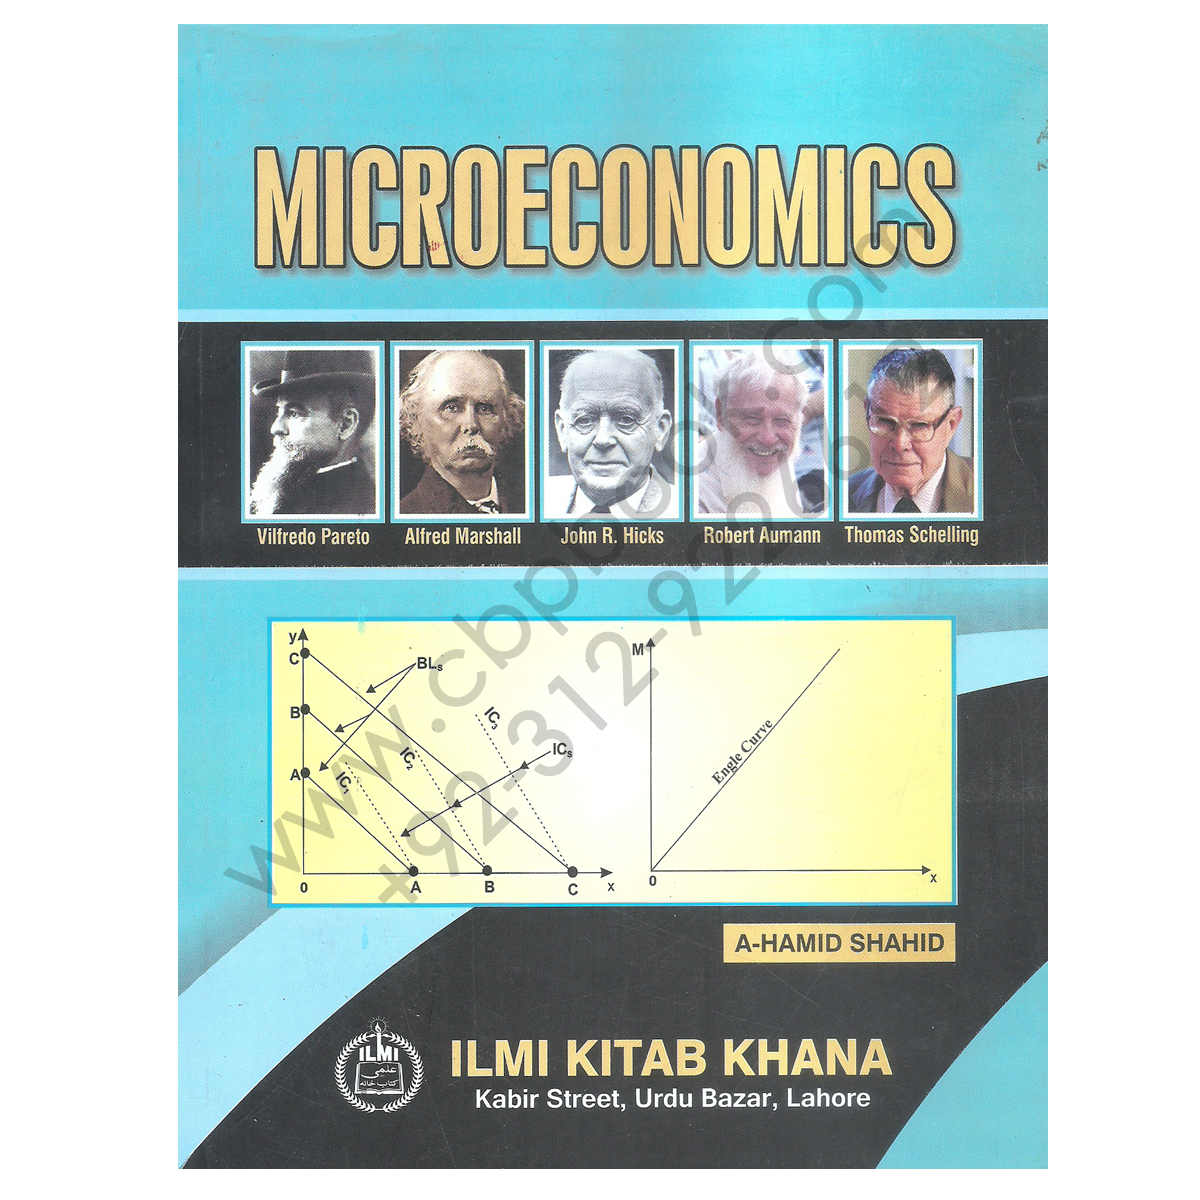 ilmi microeconomics for ma 1 by a hamid shahid